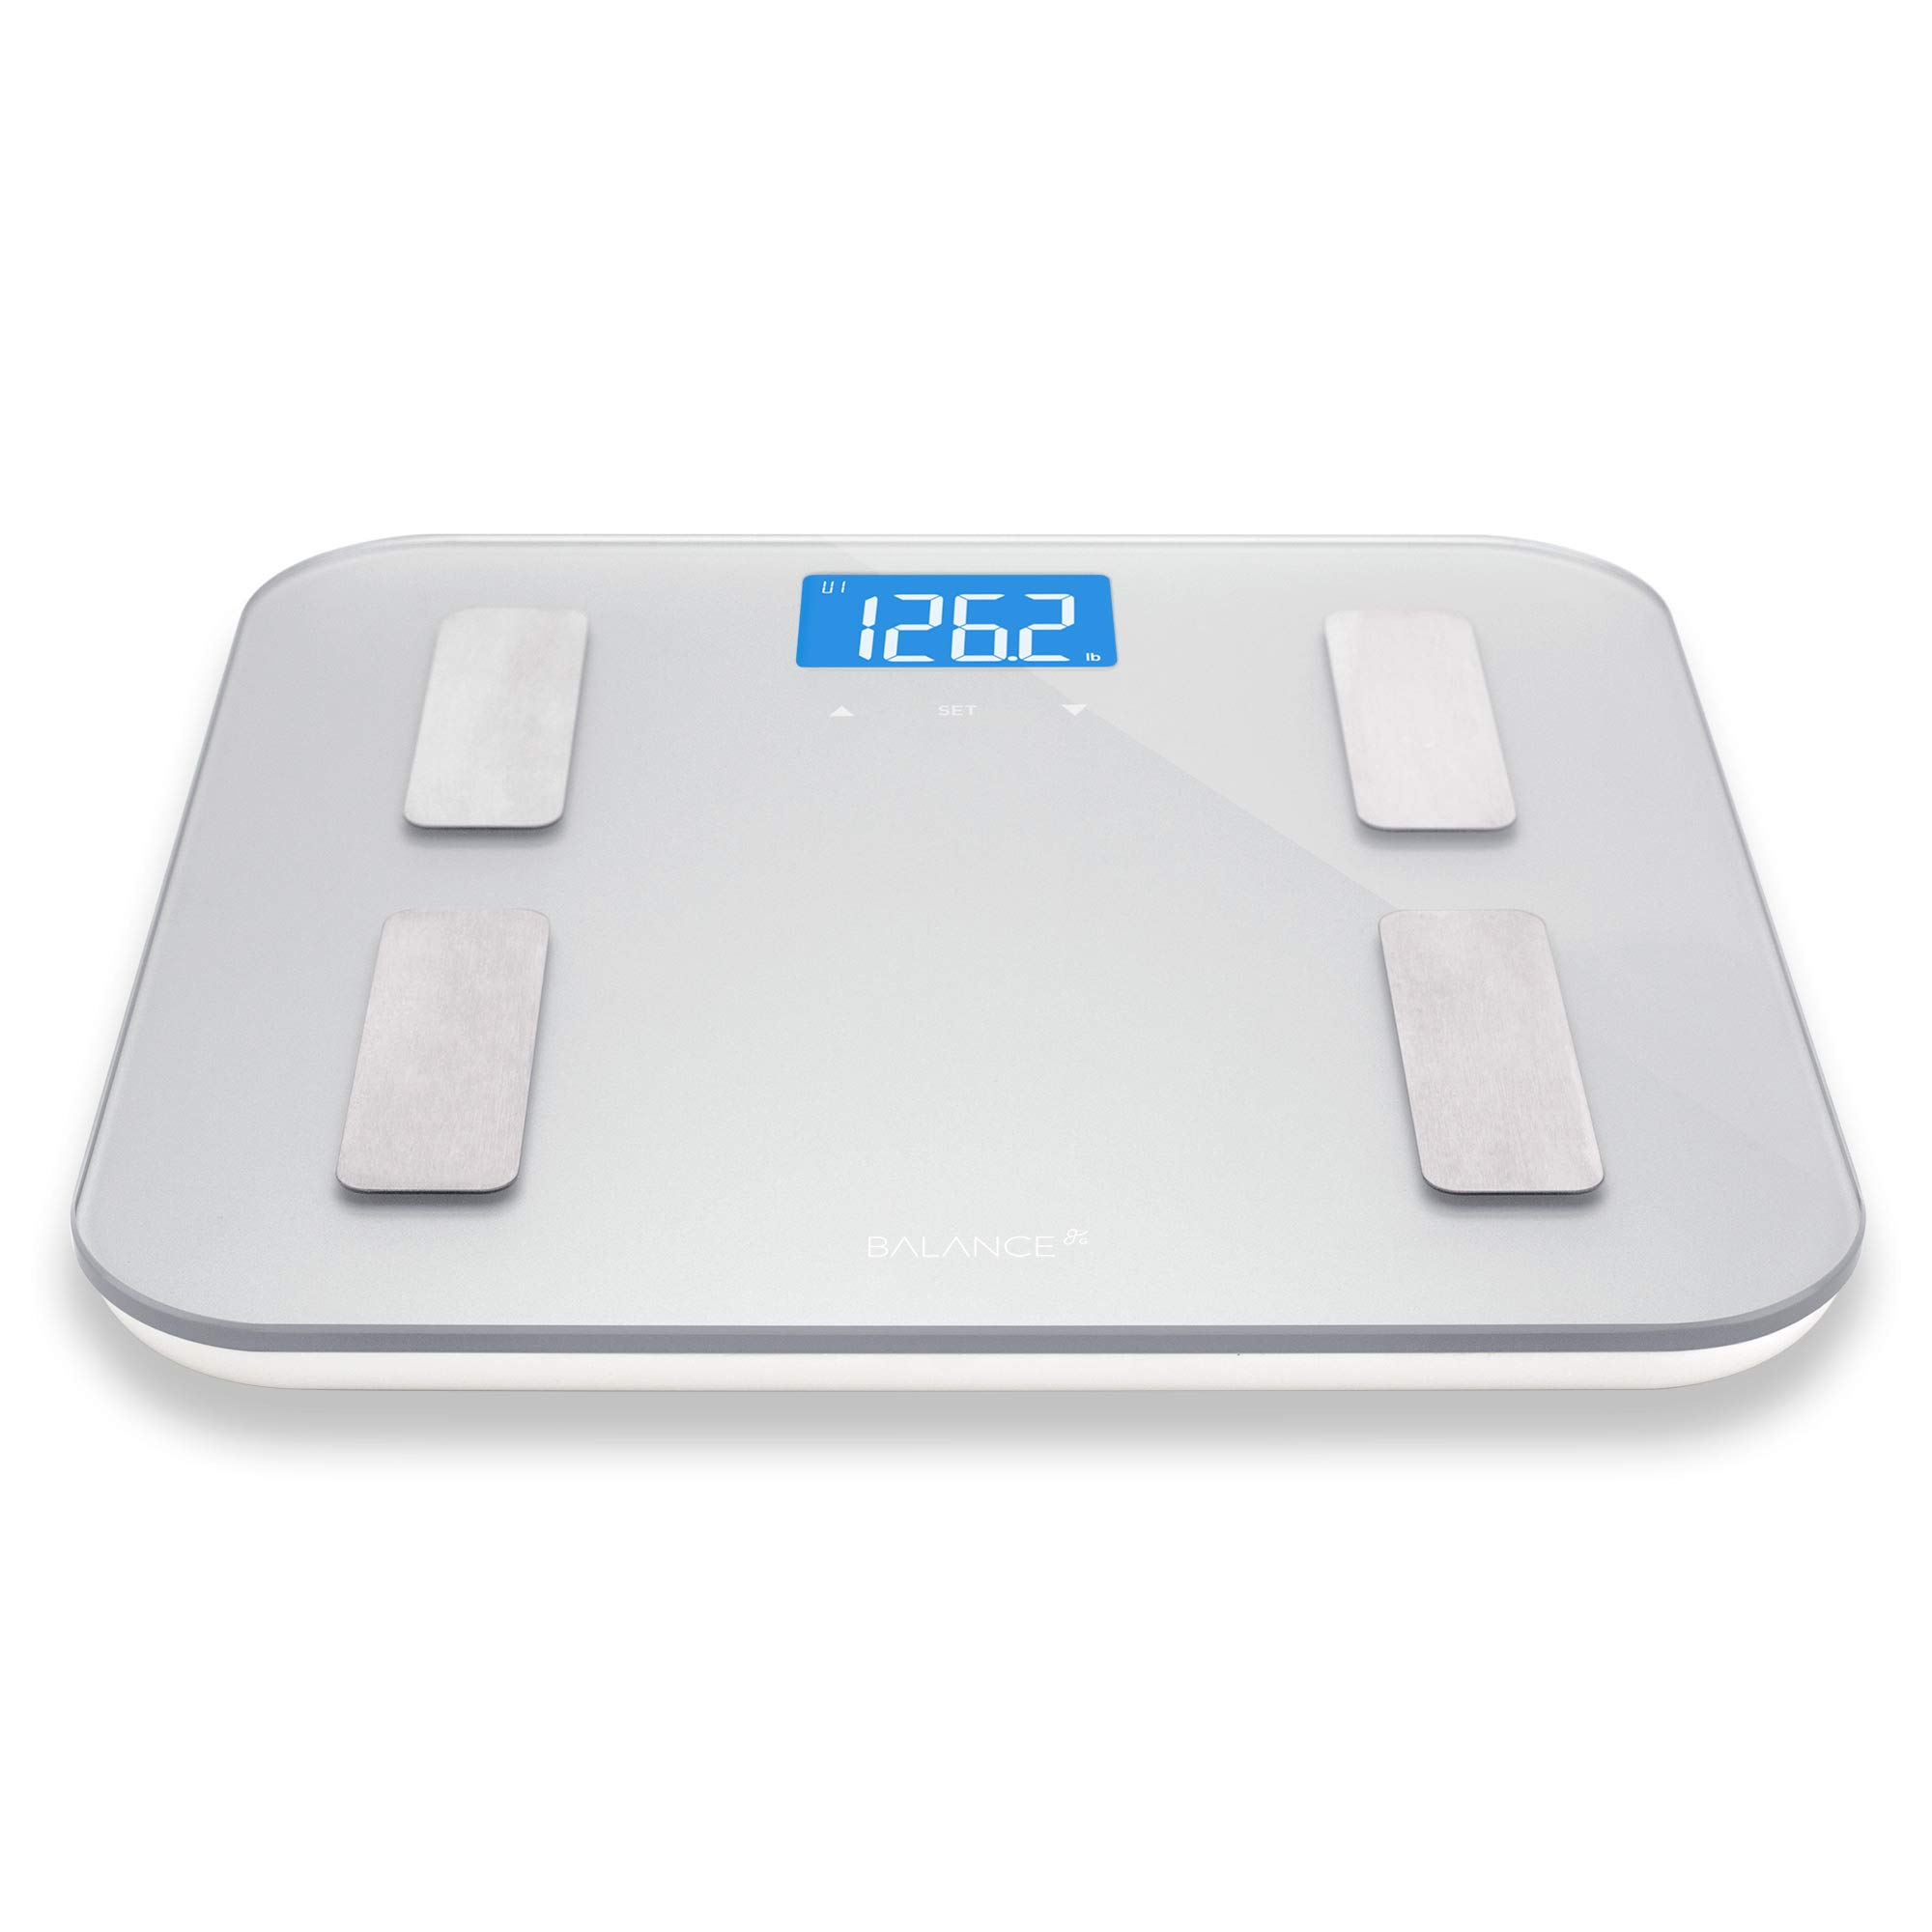 Digital Body Fat Weight Scale by Greatergoods, Accurate Health Metrics, Body Composition & Weight Measurements, Glass Top, with Large Backlit Display (Silver) by Greater Goods